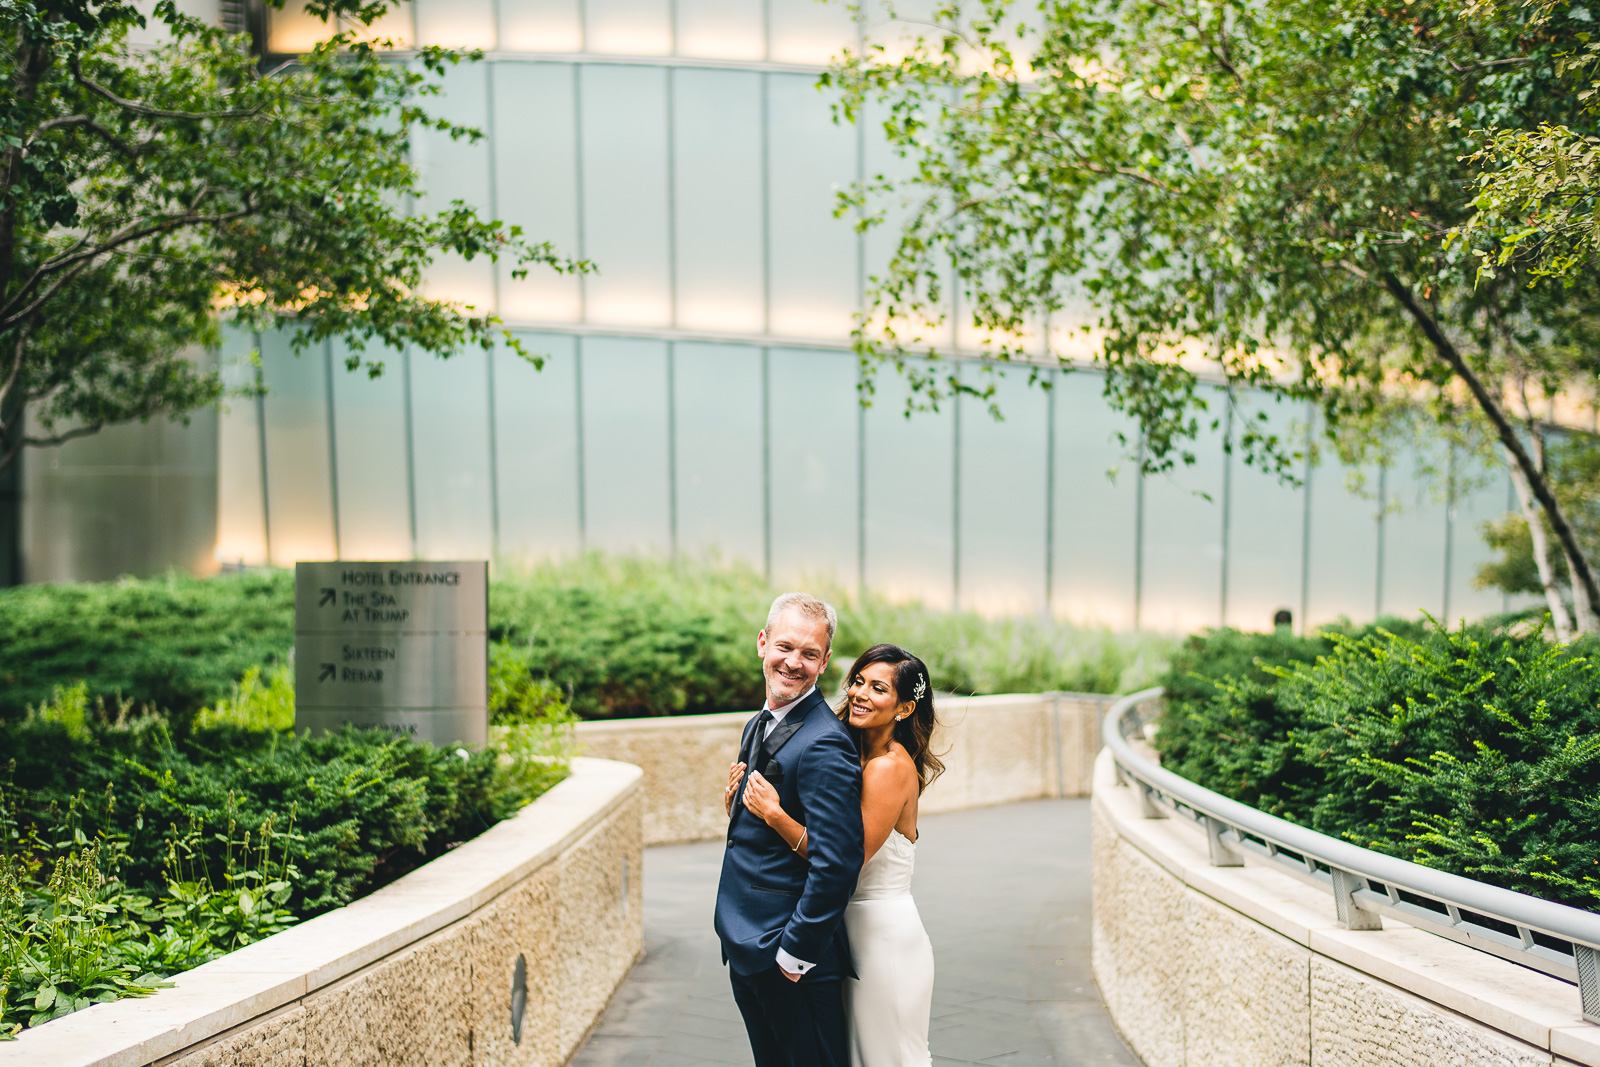 79 chicago wedding photographer best portraits during weddings review - 2018 in Review // My Favorite Chicago Wedding Photography Portraits